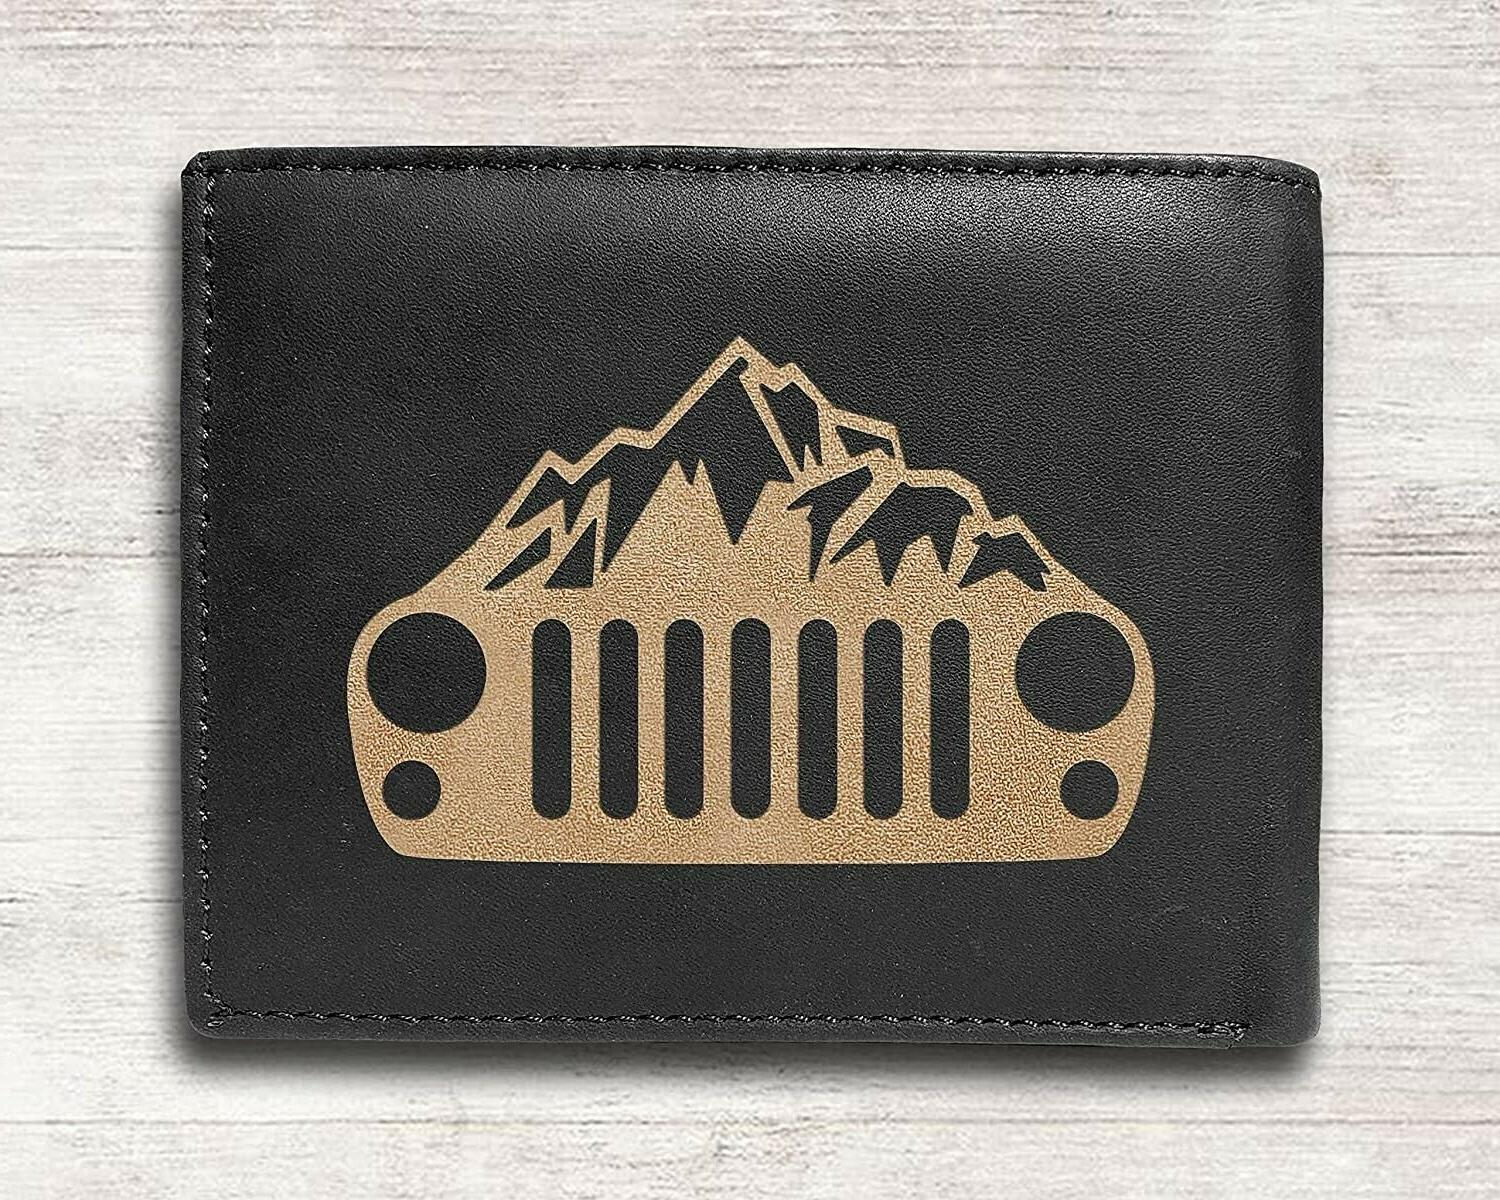 Jeep Wrangler Cowhide Leather Engraved Engraving Wallet NEW